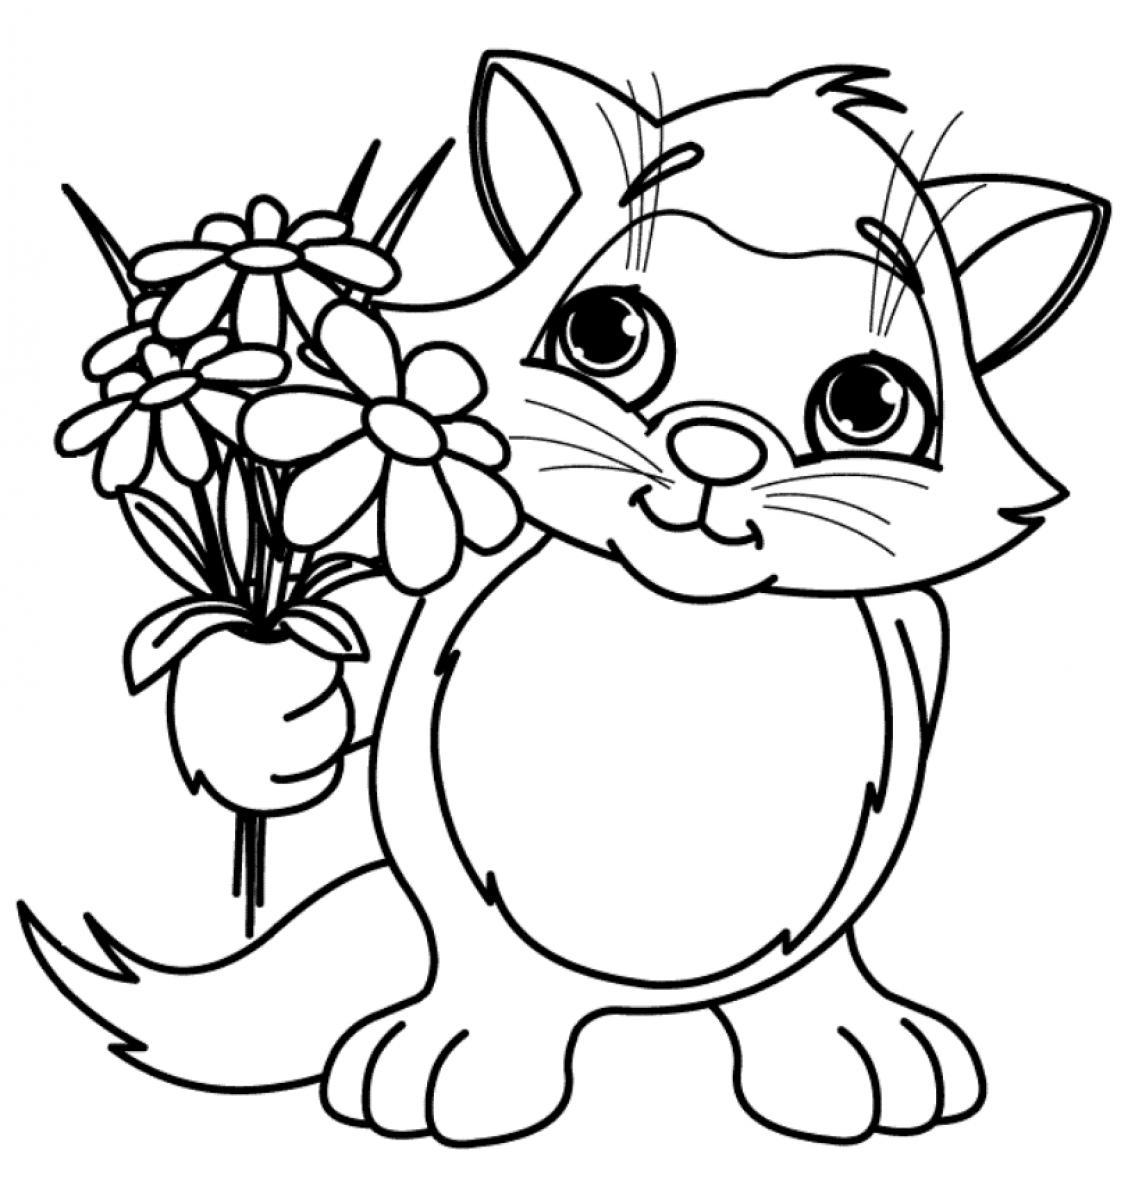 flowers to color bouquet of flowers coloring pages for childrens printable to color flowers